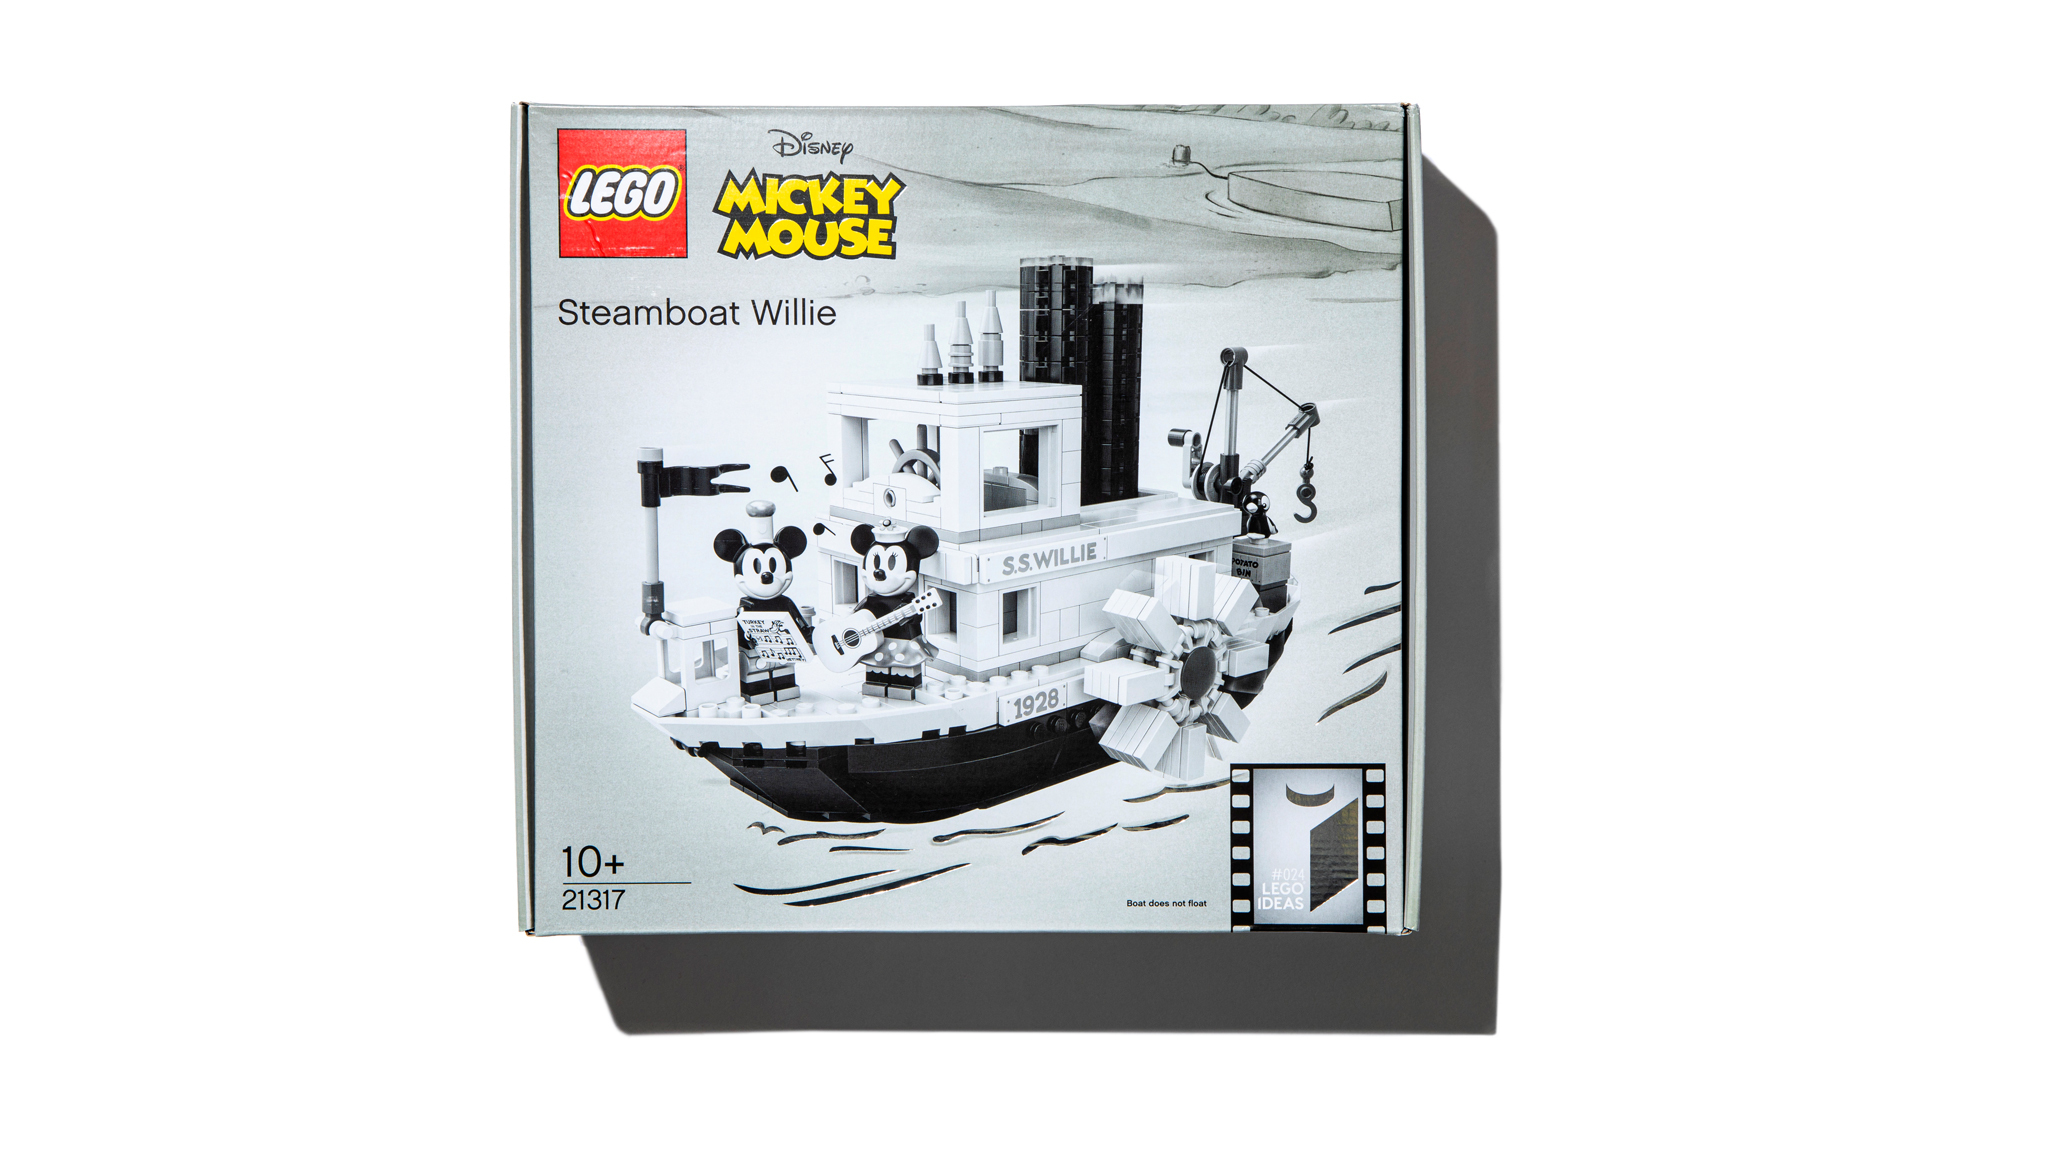 'Steamboat Willie' Lego featuring Mickey Mouse